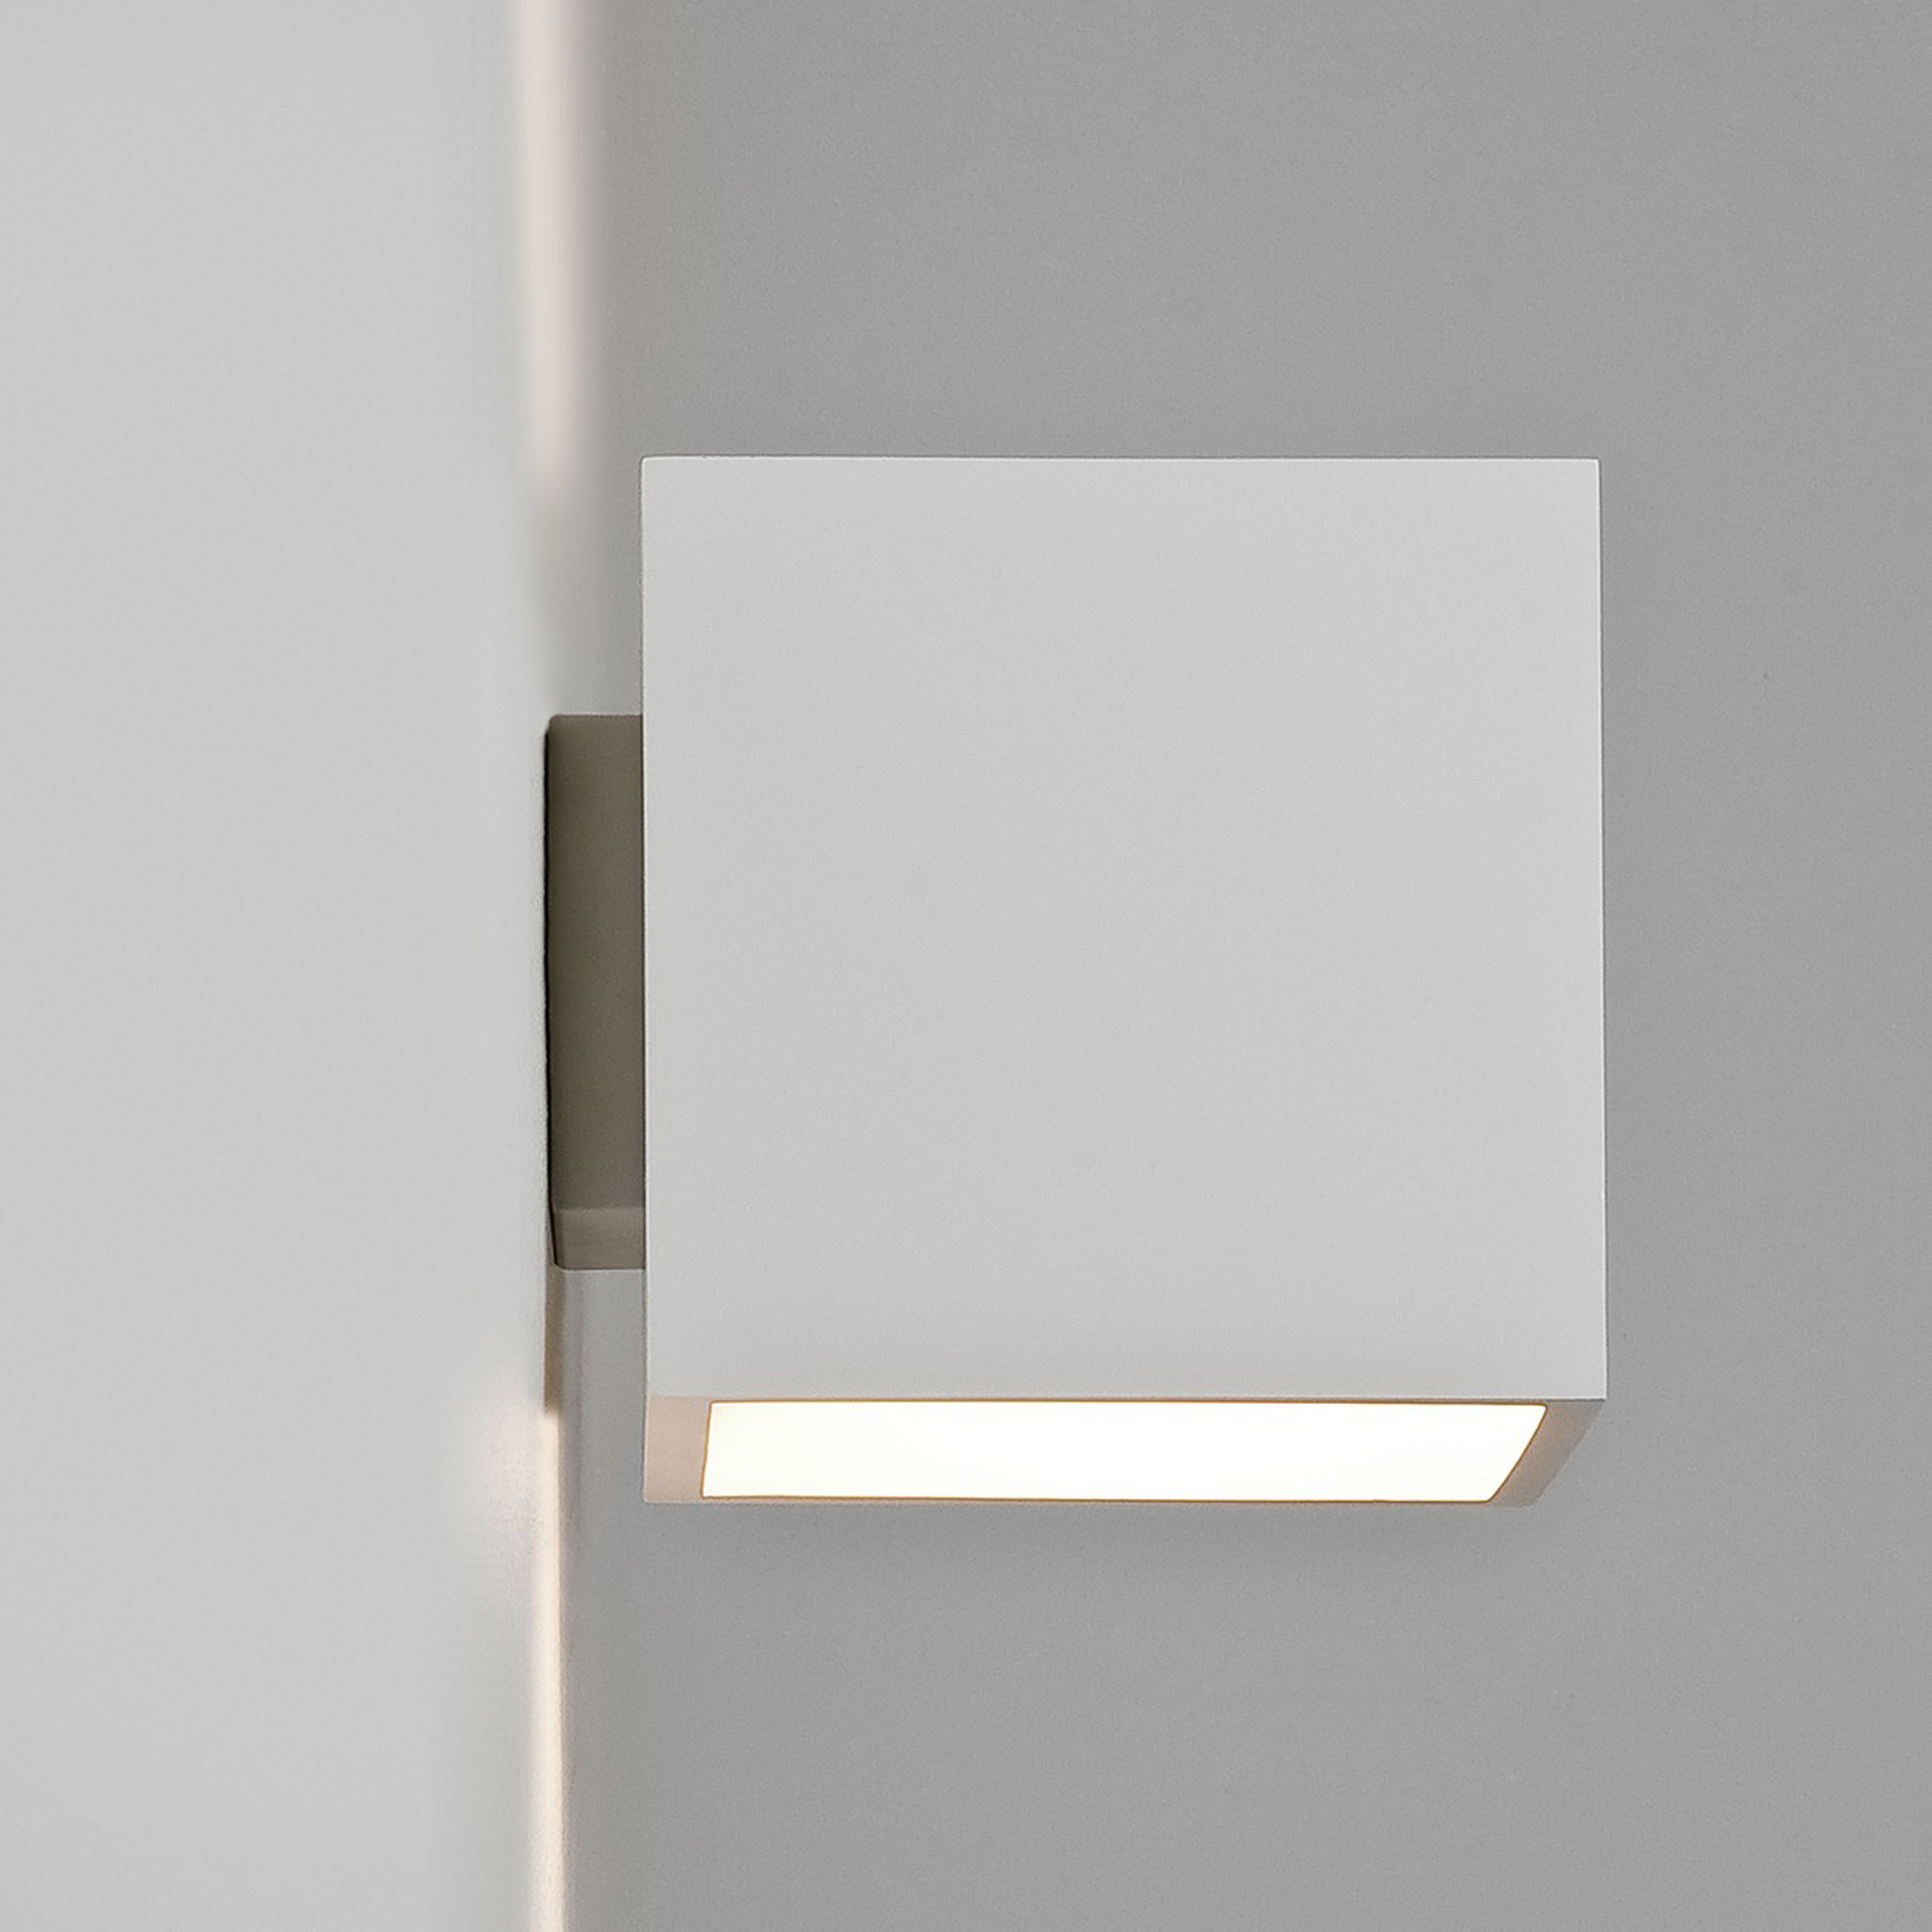 Astro Pienza 140 Wall Light Plaster